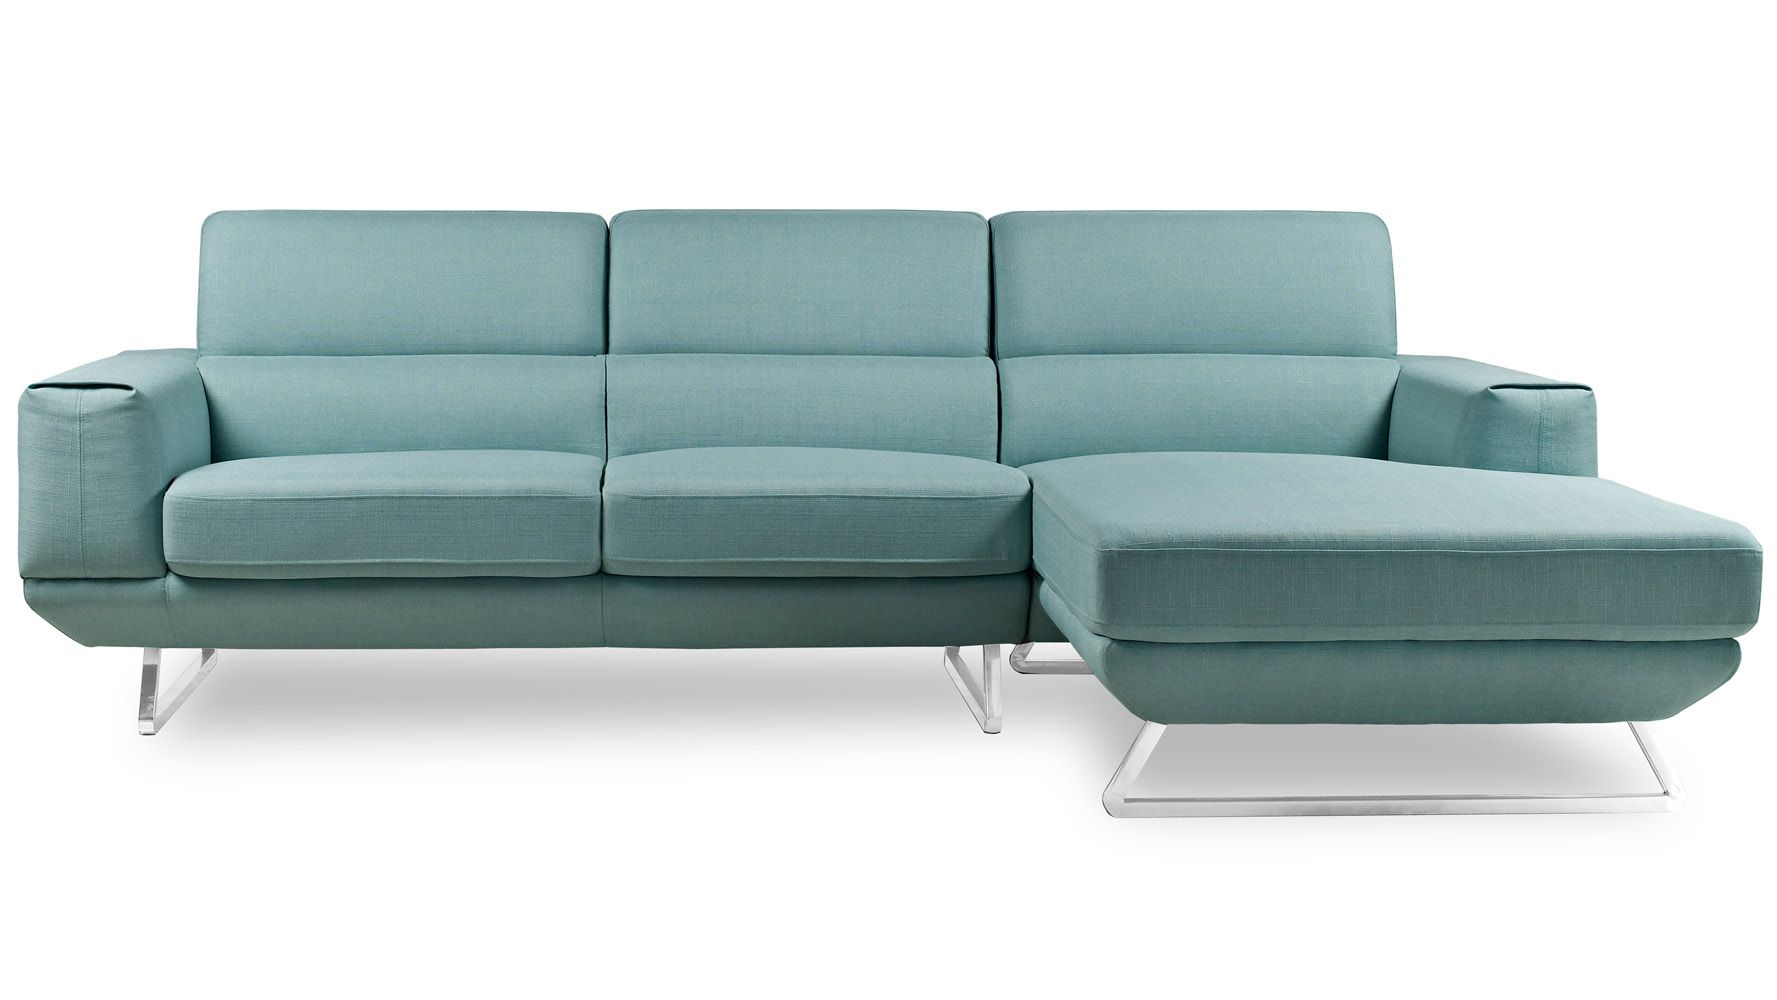 Zeitgen Ssische Sofas To Furnishings Modern Fabric Upholstered 3 Seater Kensington Sectional Sofa